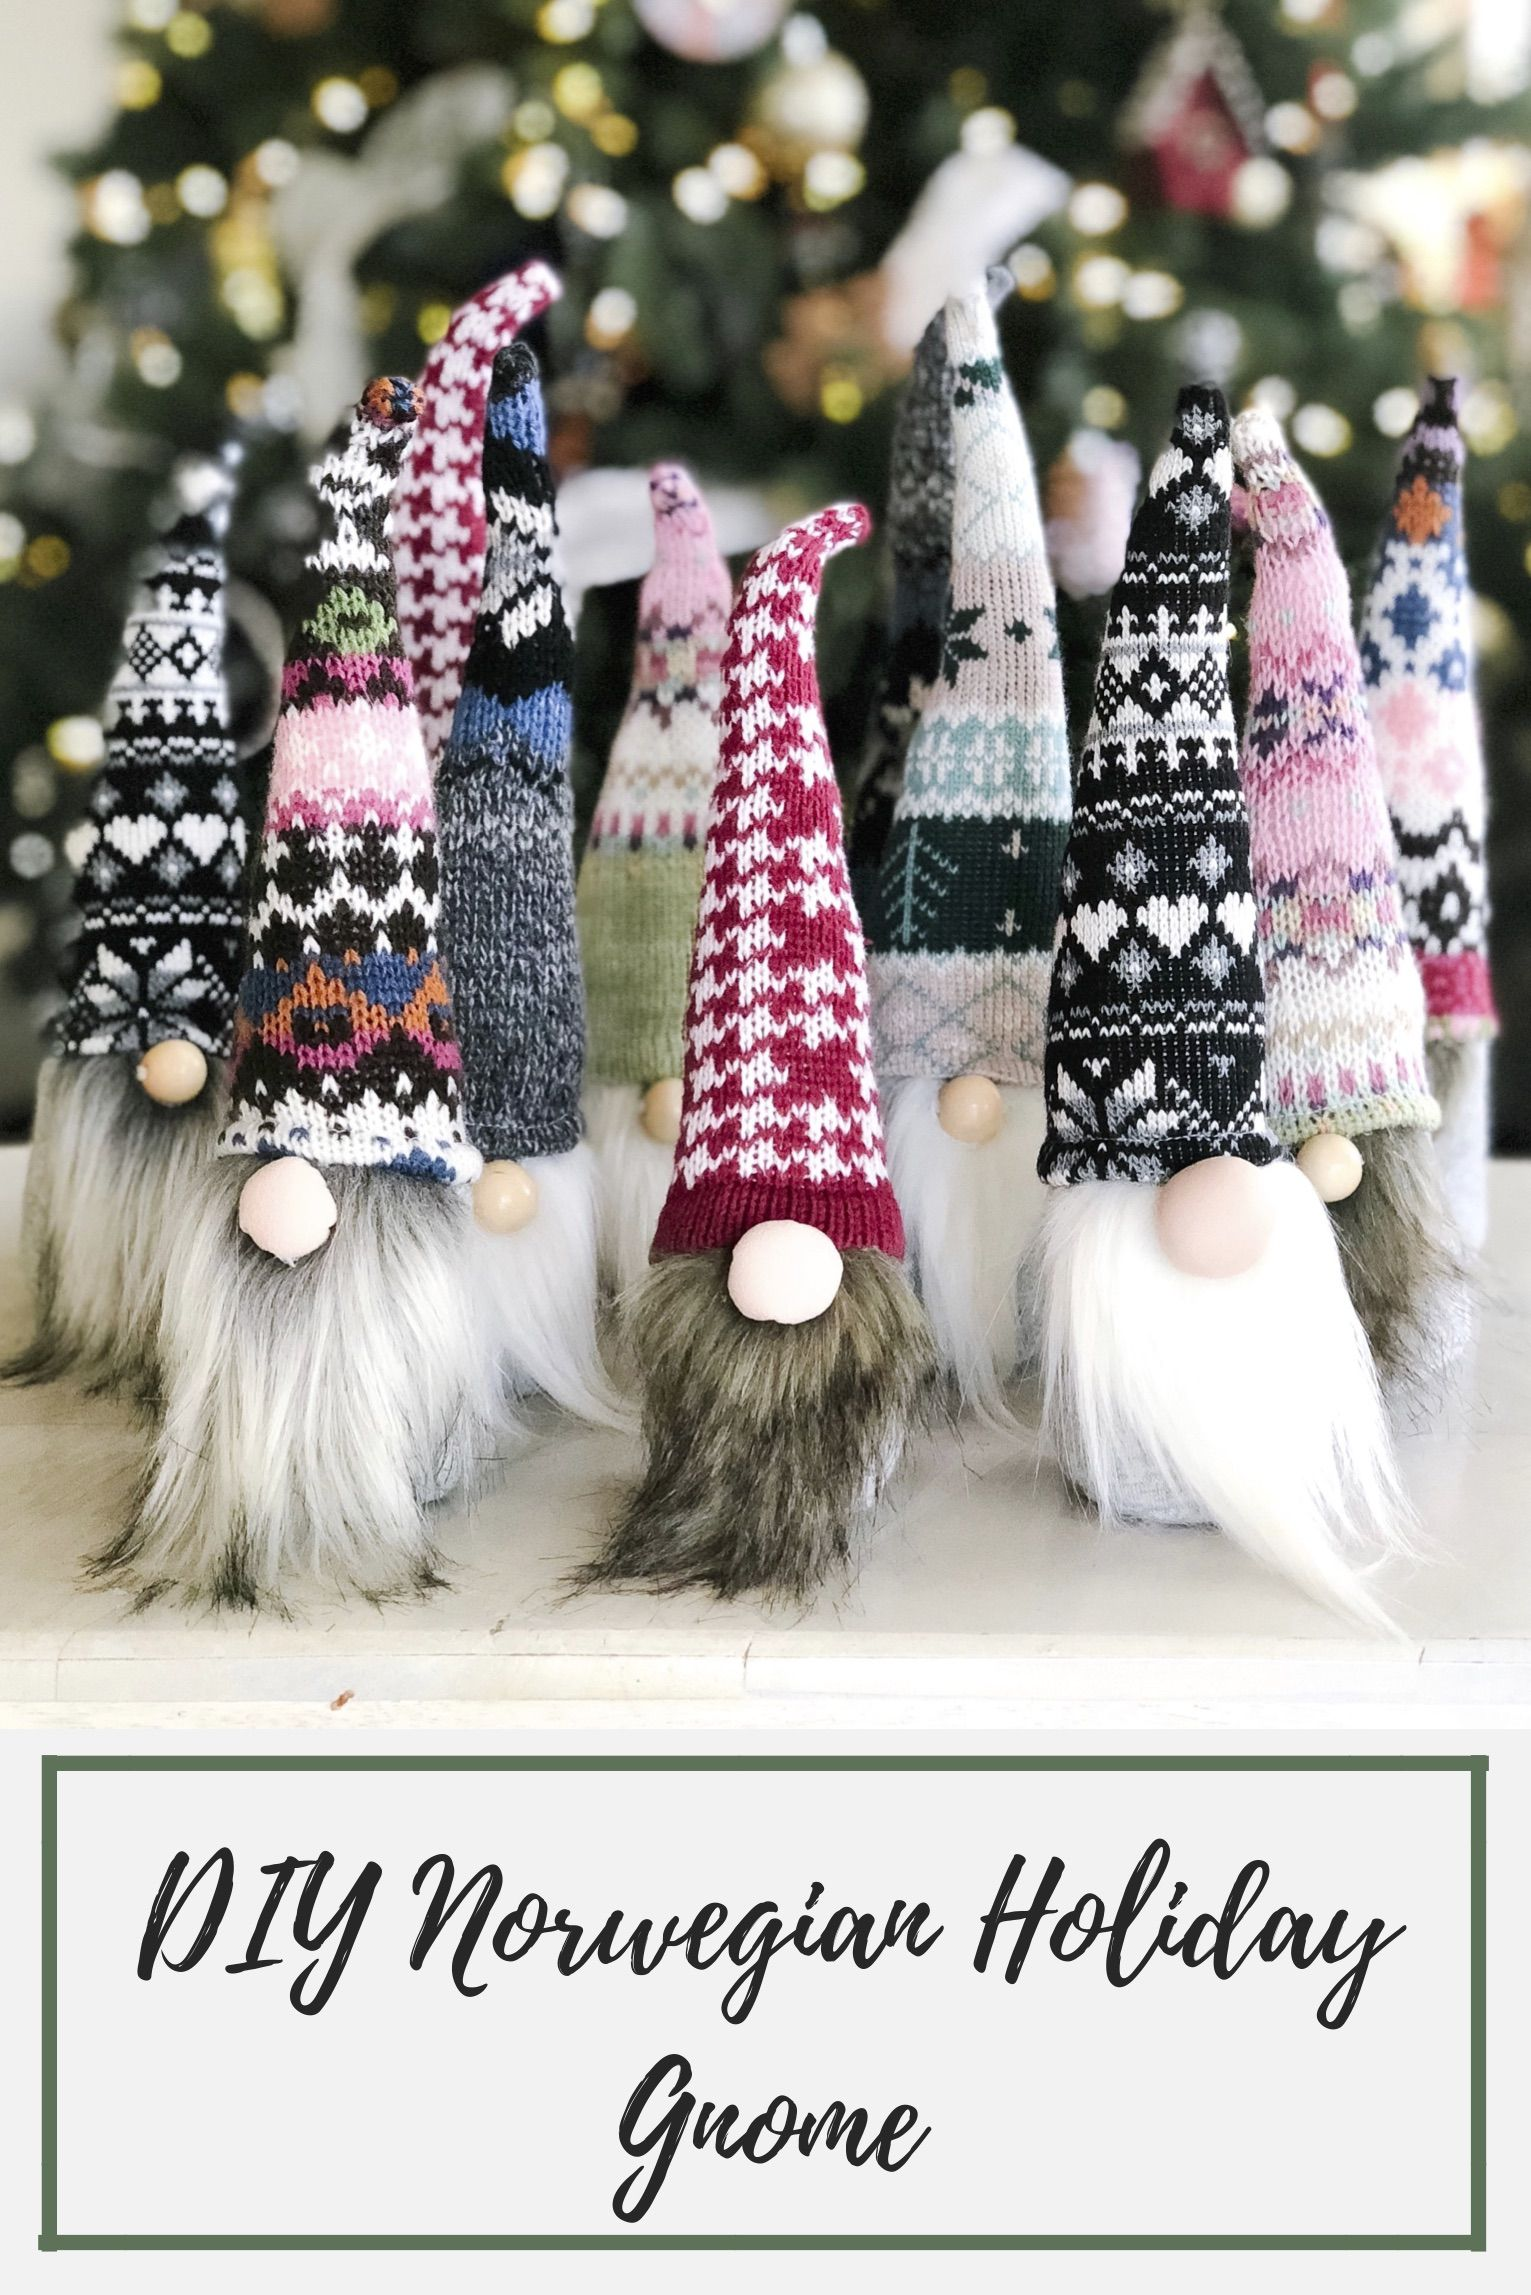 Diy Norwegian Holiday Gnomes Gnomes Crafts Christmas Crafts Xmas Crafts